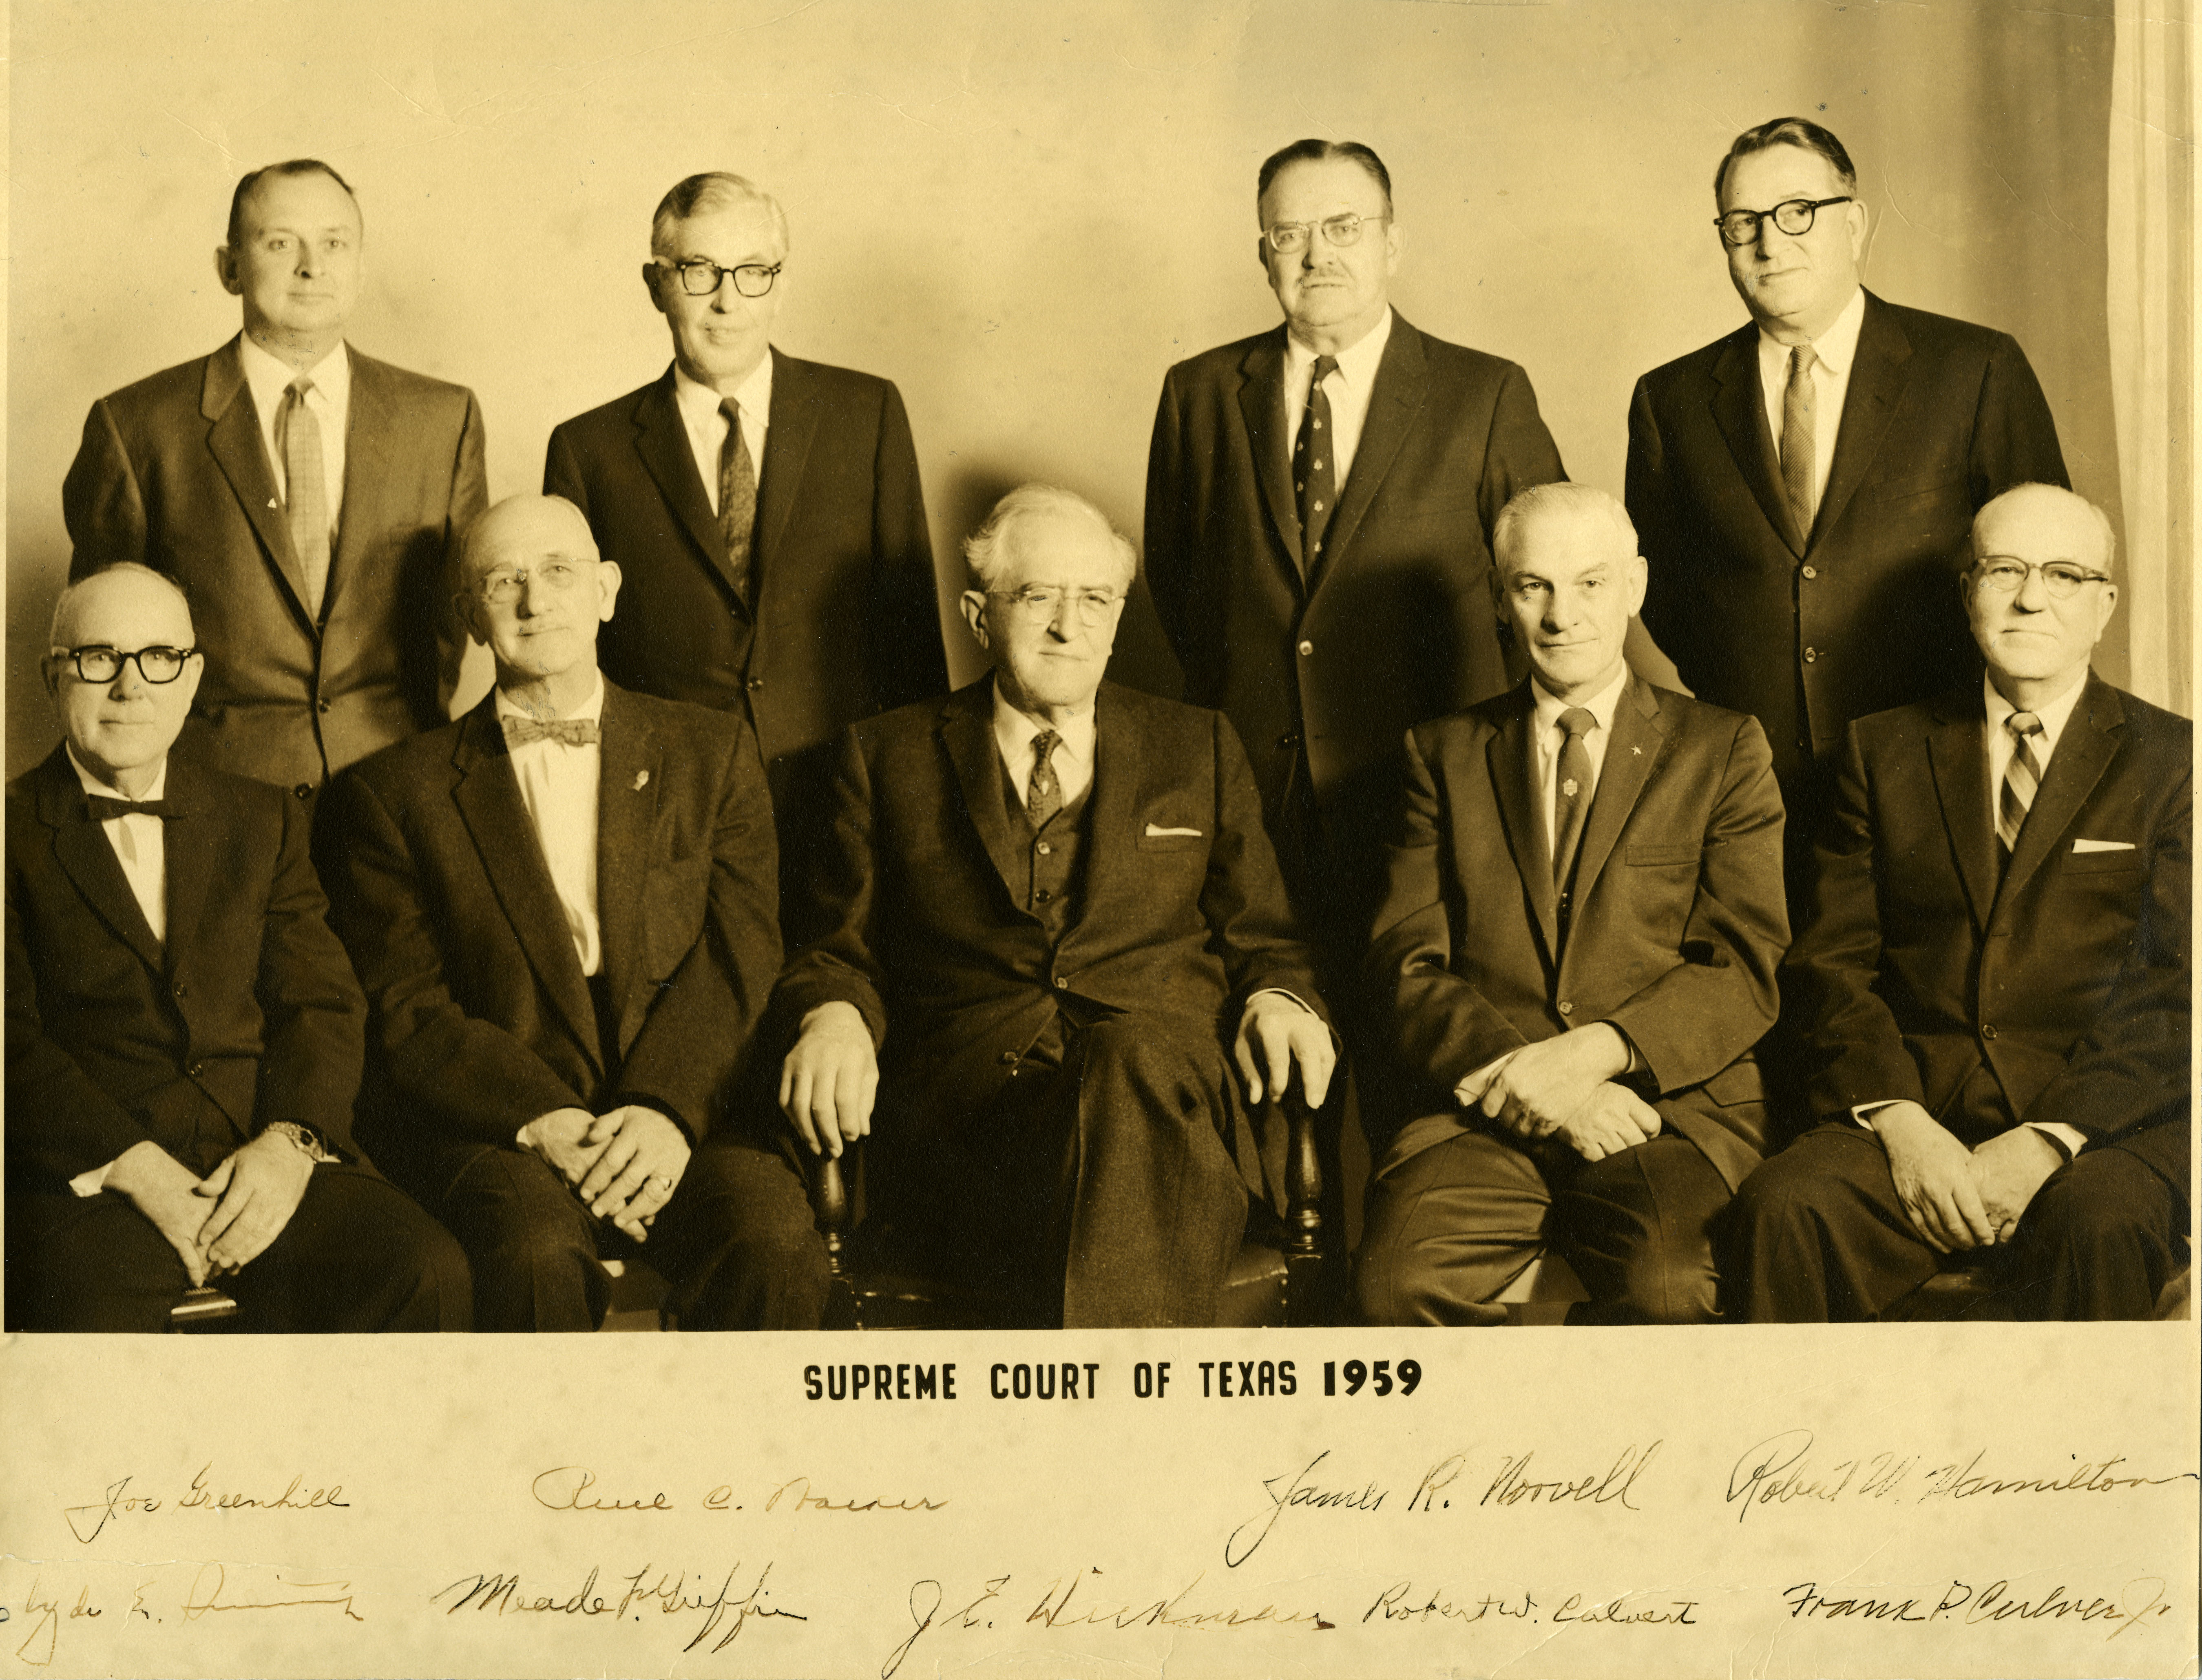 1959 Supreme Court, signed by the justices. Photo: Texas Supreme Court Archives.